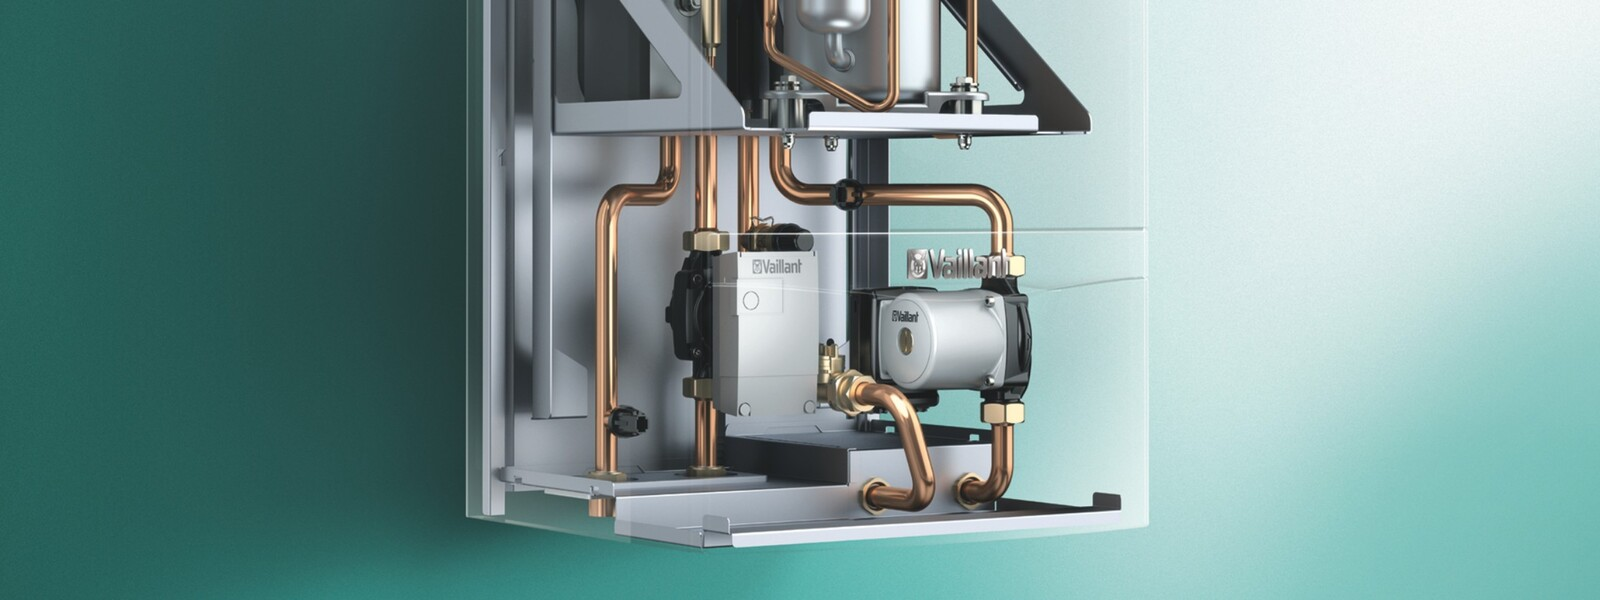 https://www.vaillant-group.com/newsroom/pressemitteilungen/2017/ish-2017/3-kw-geotherm/marktneuheit-wandhaengende-waermepumpe-geotherm-2-941104-format-24-9@1600@desktop.jpg